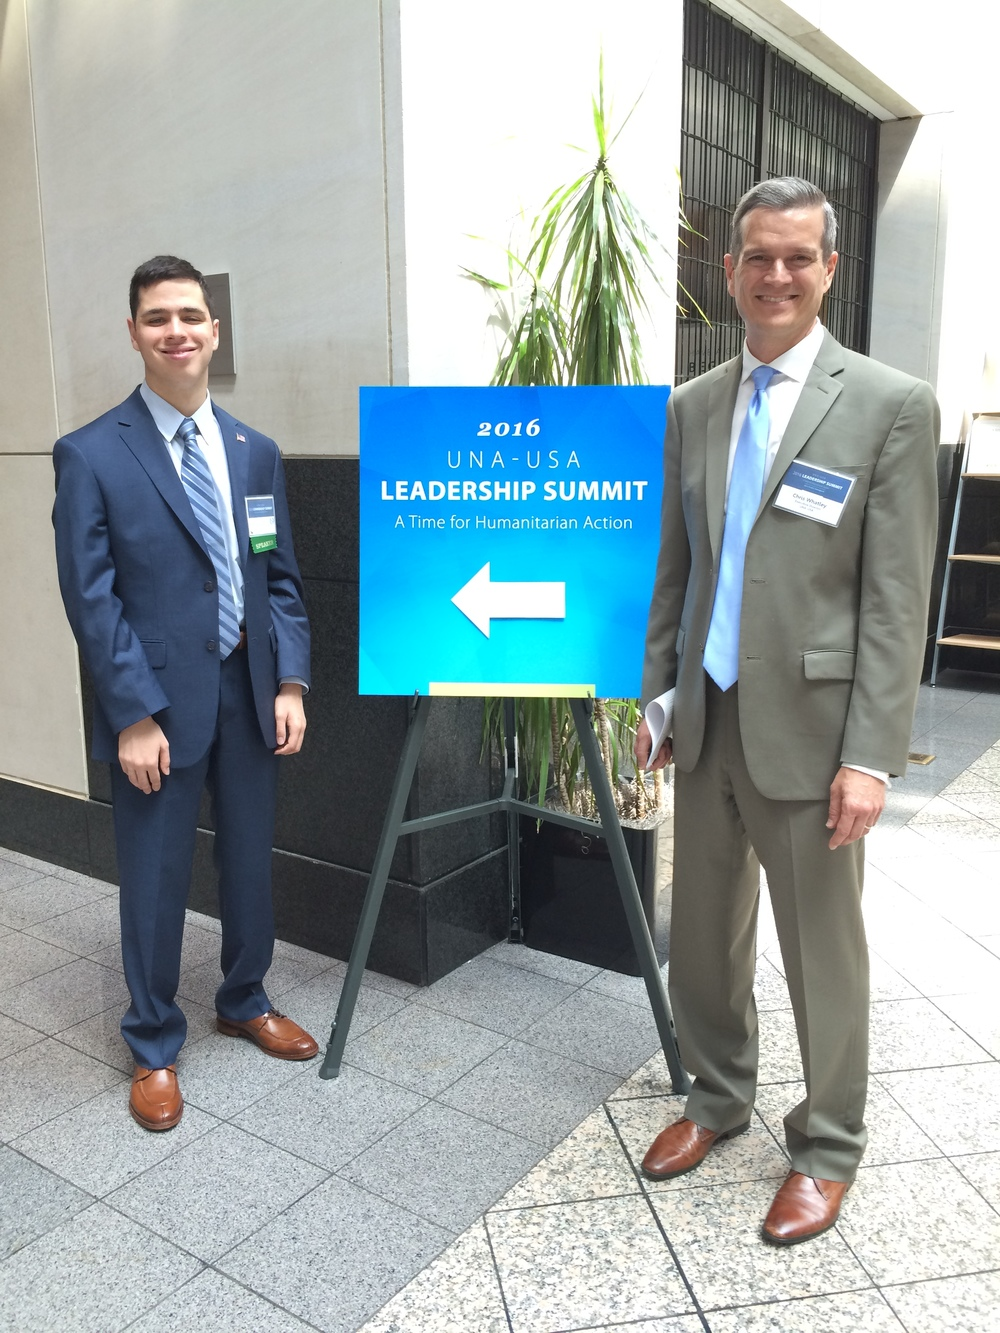 Pierce Lowary with UNA-USA Executive Director Chris Whatley 2016 Leadership Summit in DC